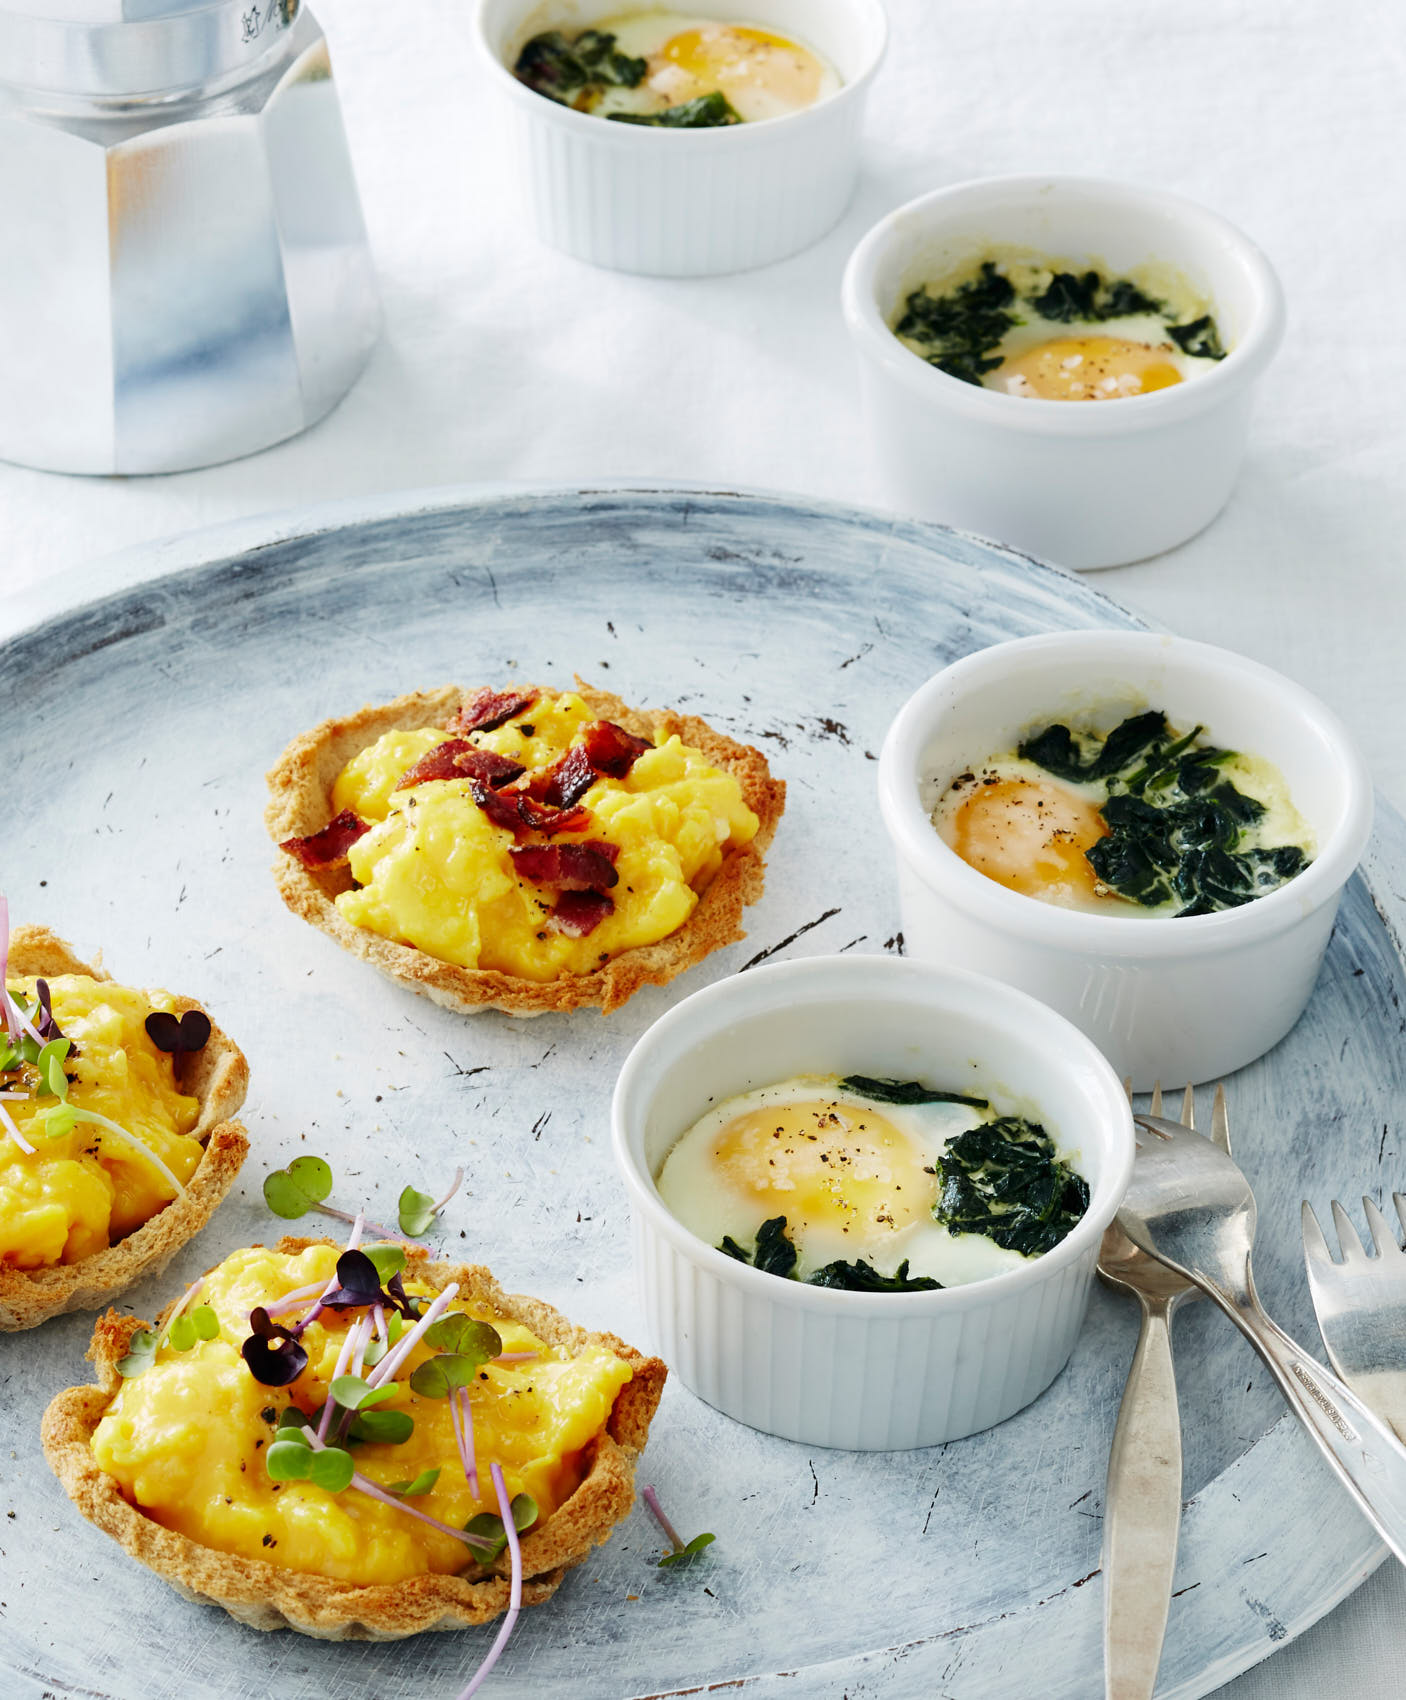 scrambled-egg-rye-tartlets-and-baked-eggs-0493-w